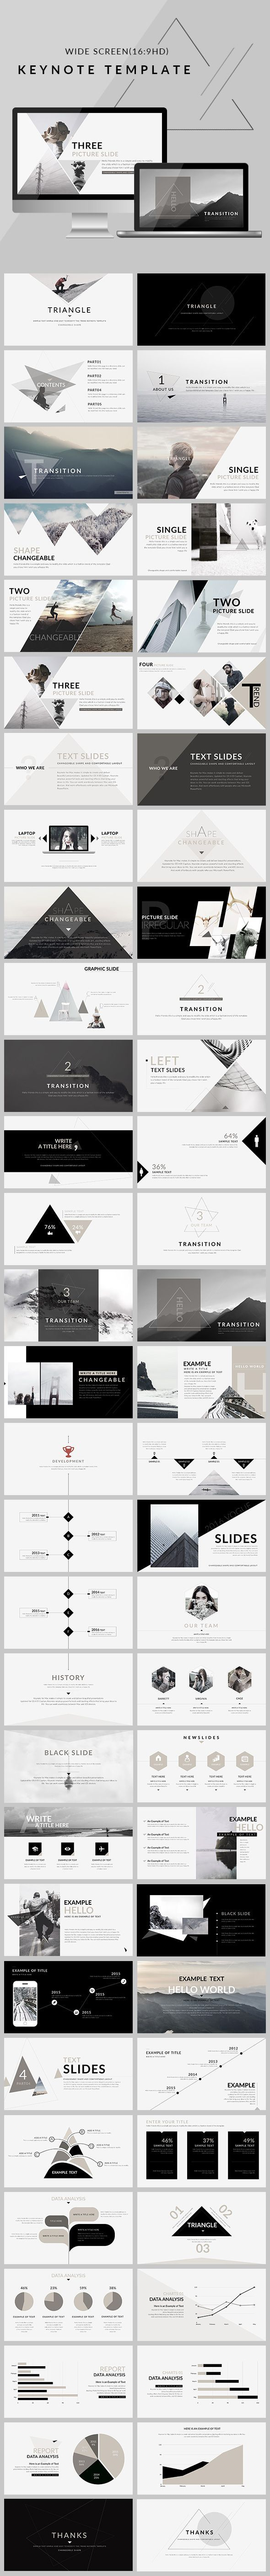 triangle - clean trend keynote template | triangles, template and, Powerpoint templates